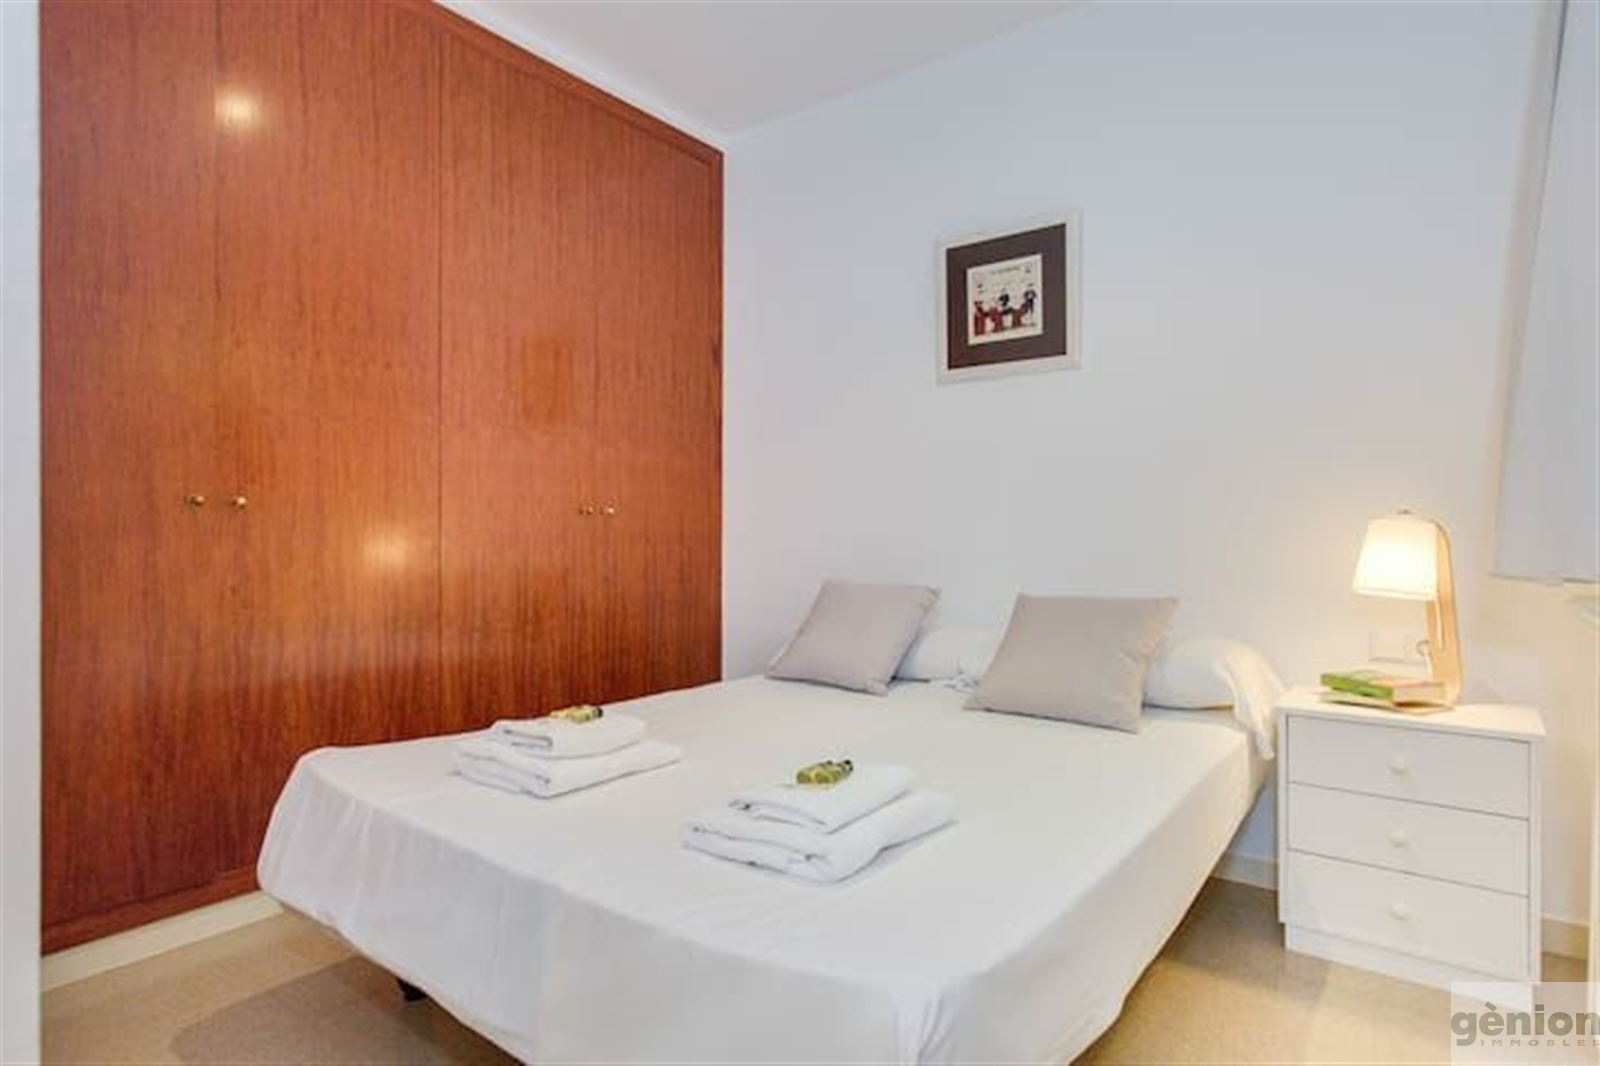 FOUR-BEDROOM APARTMENT IN GIRONA CITY CENTRE, NEXT TO PLAÇA DEL MERCAT